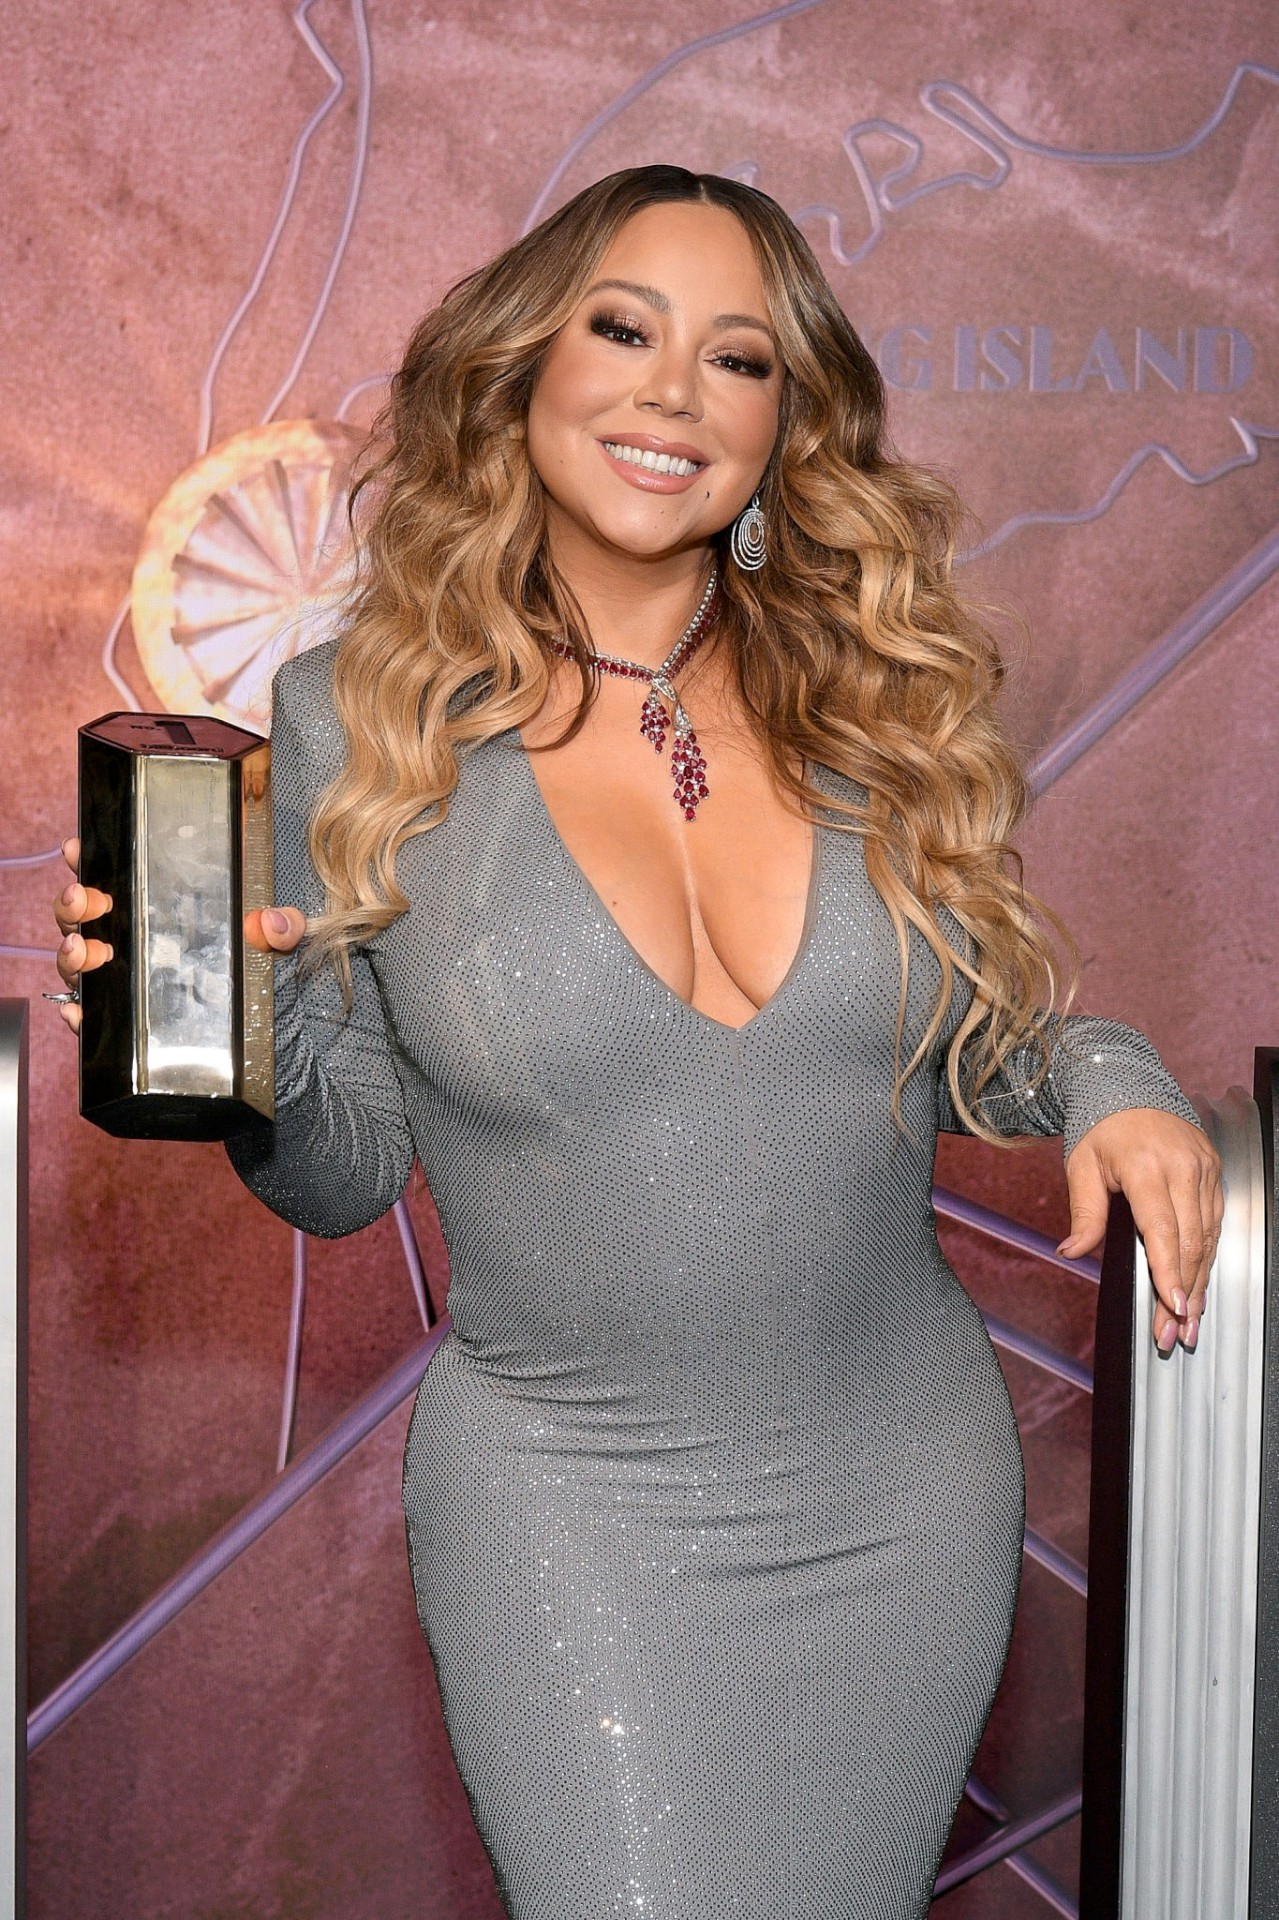 Mariah Carey - - Sexy Big Boobs at Empire State Building in New York   Hot Celebs Home